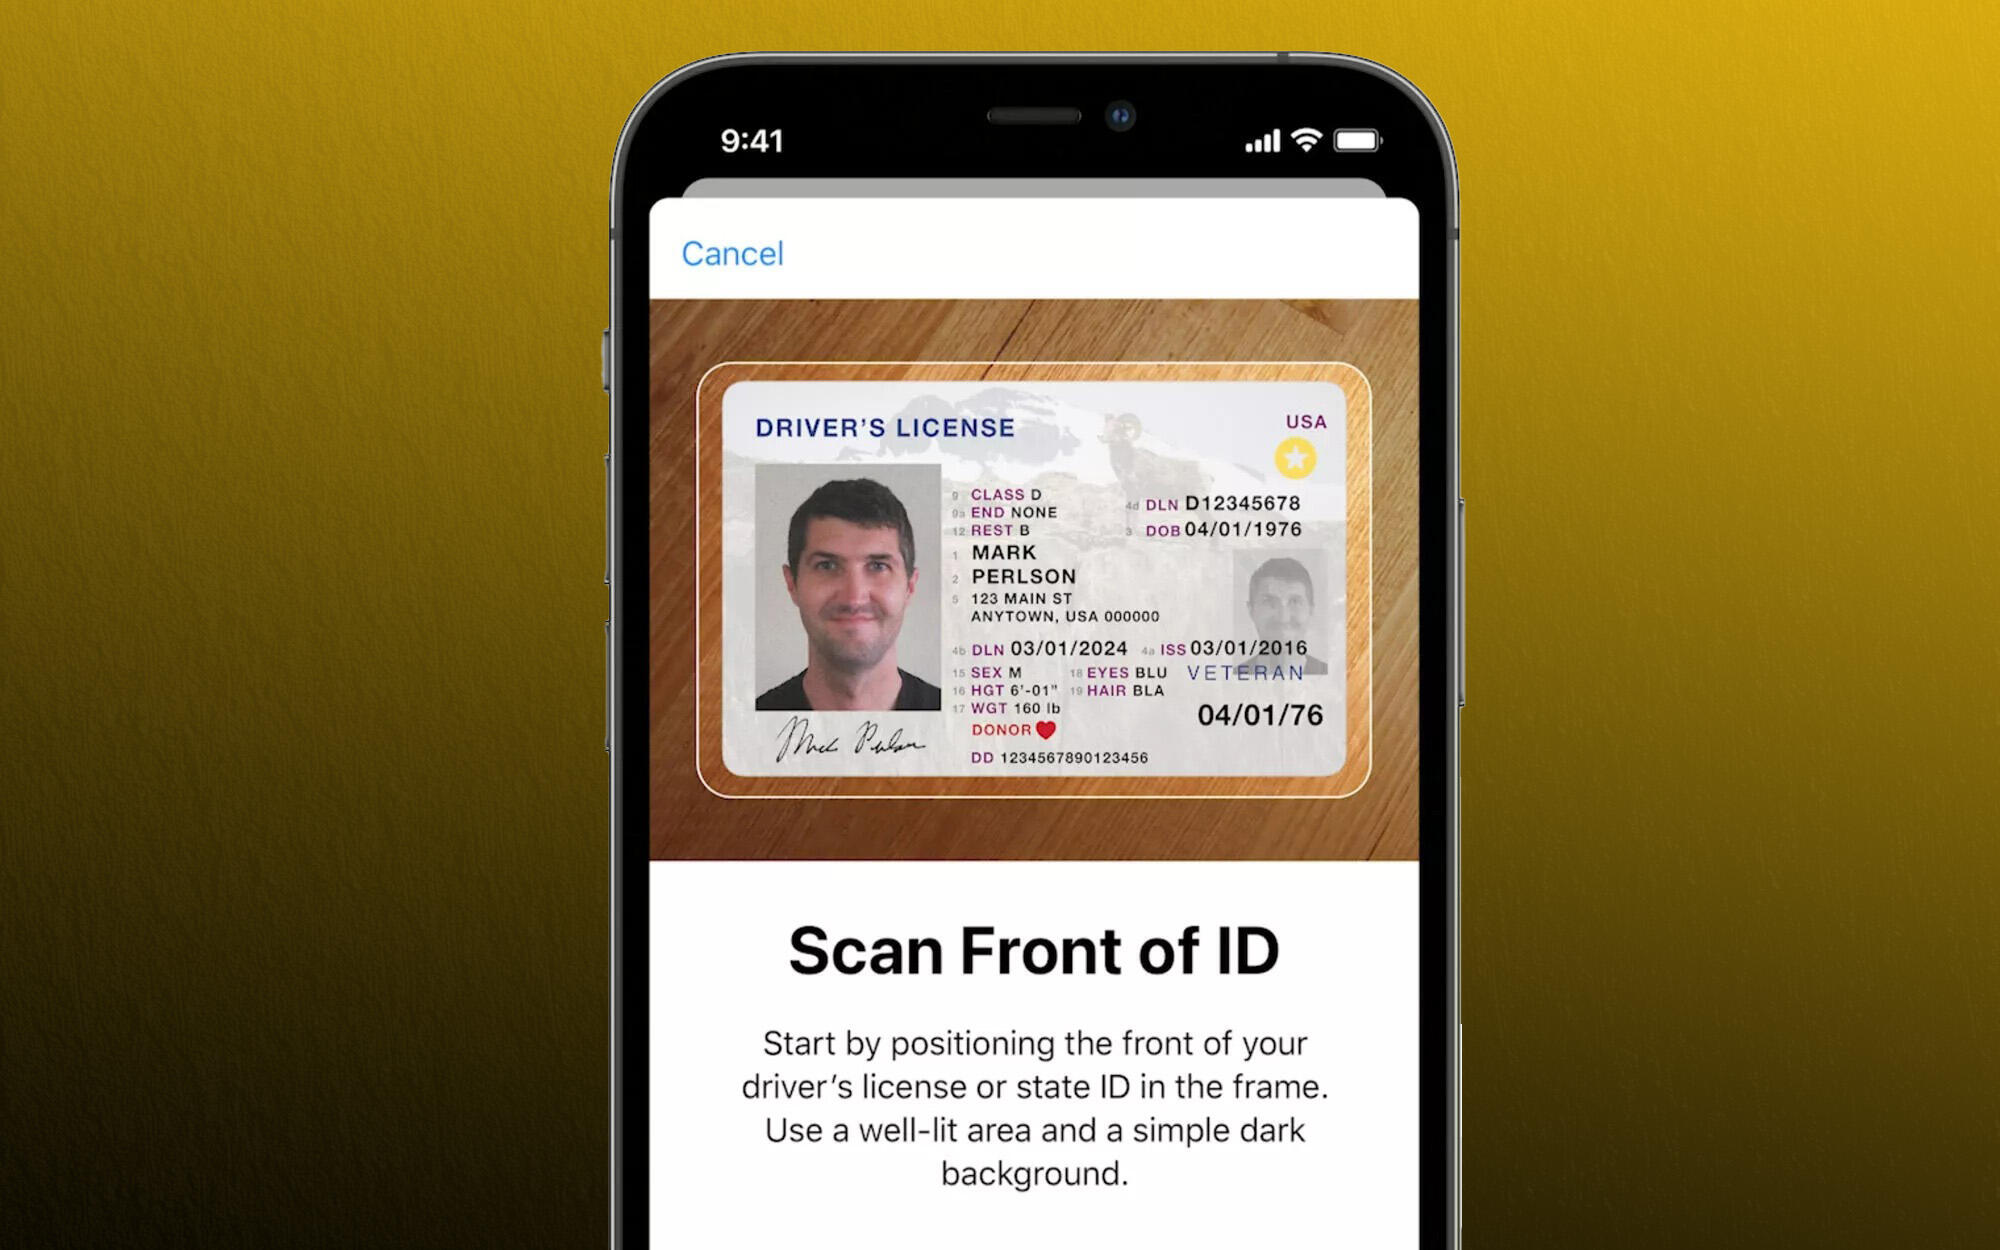 Apple's identification scan and stored in iPhone Wallet